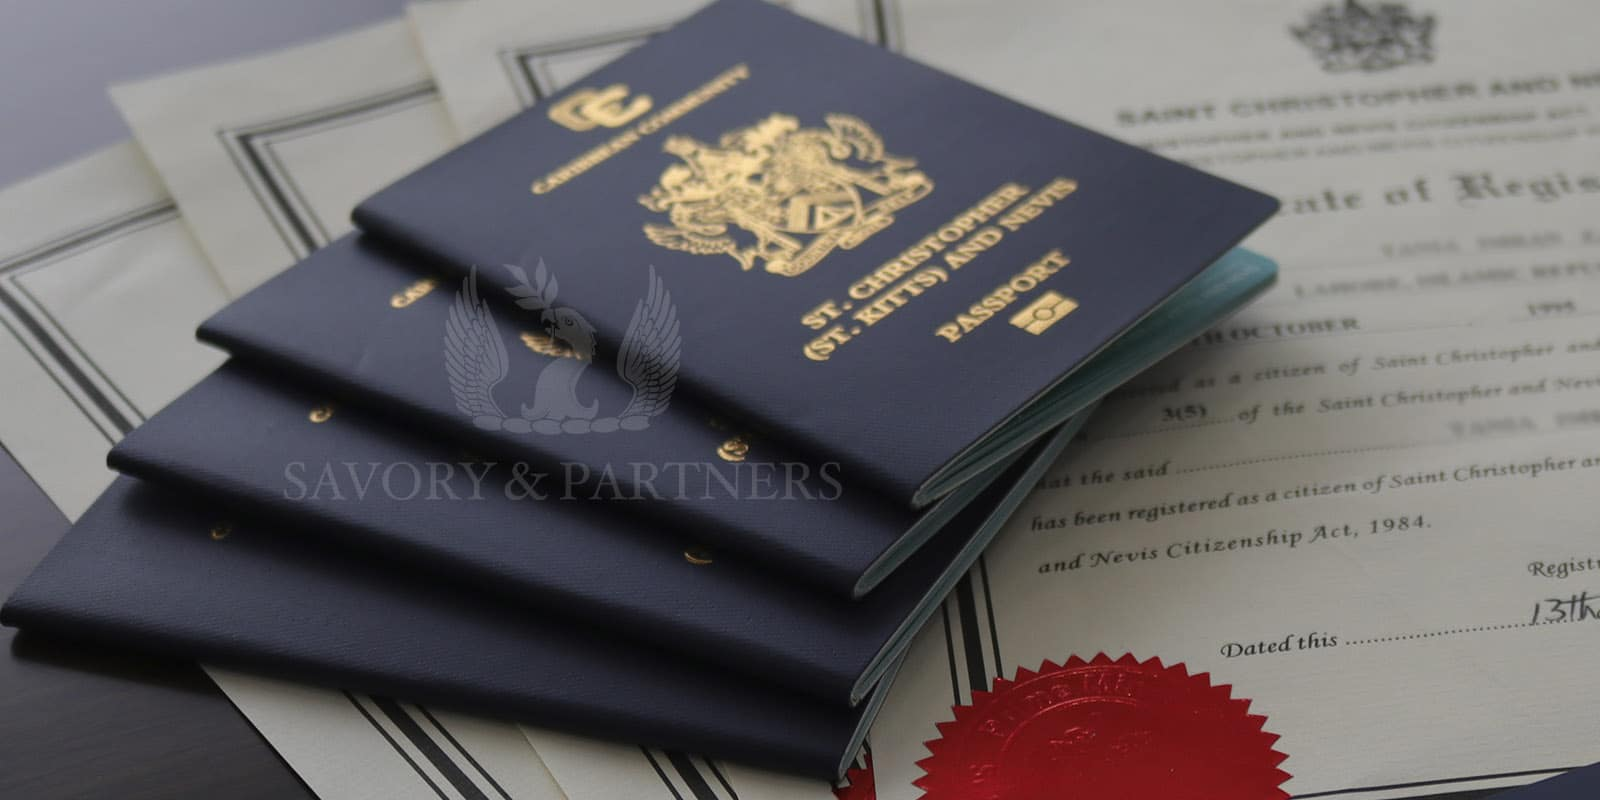 St Kitts & Nevis passports for a family of 4 members.